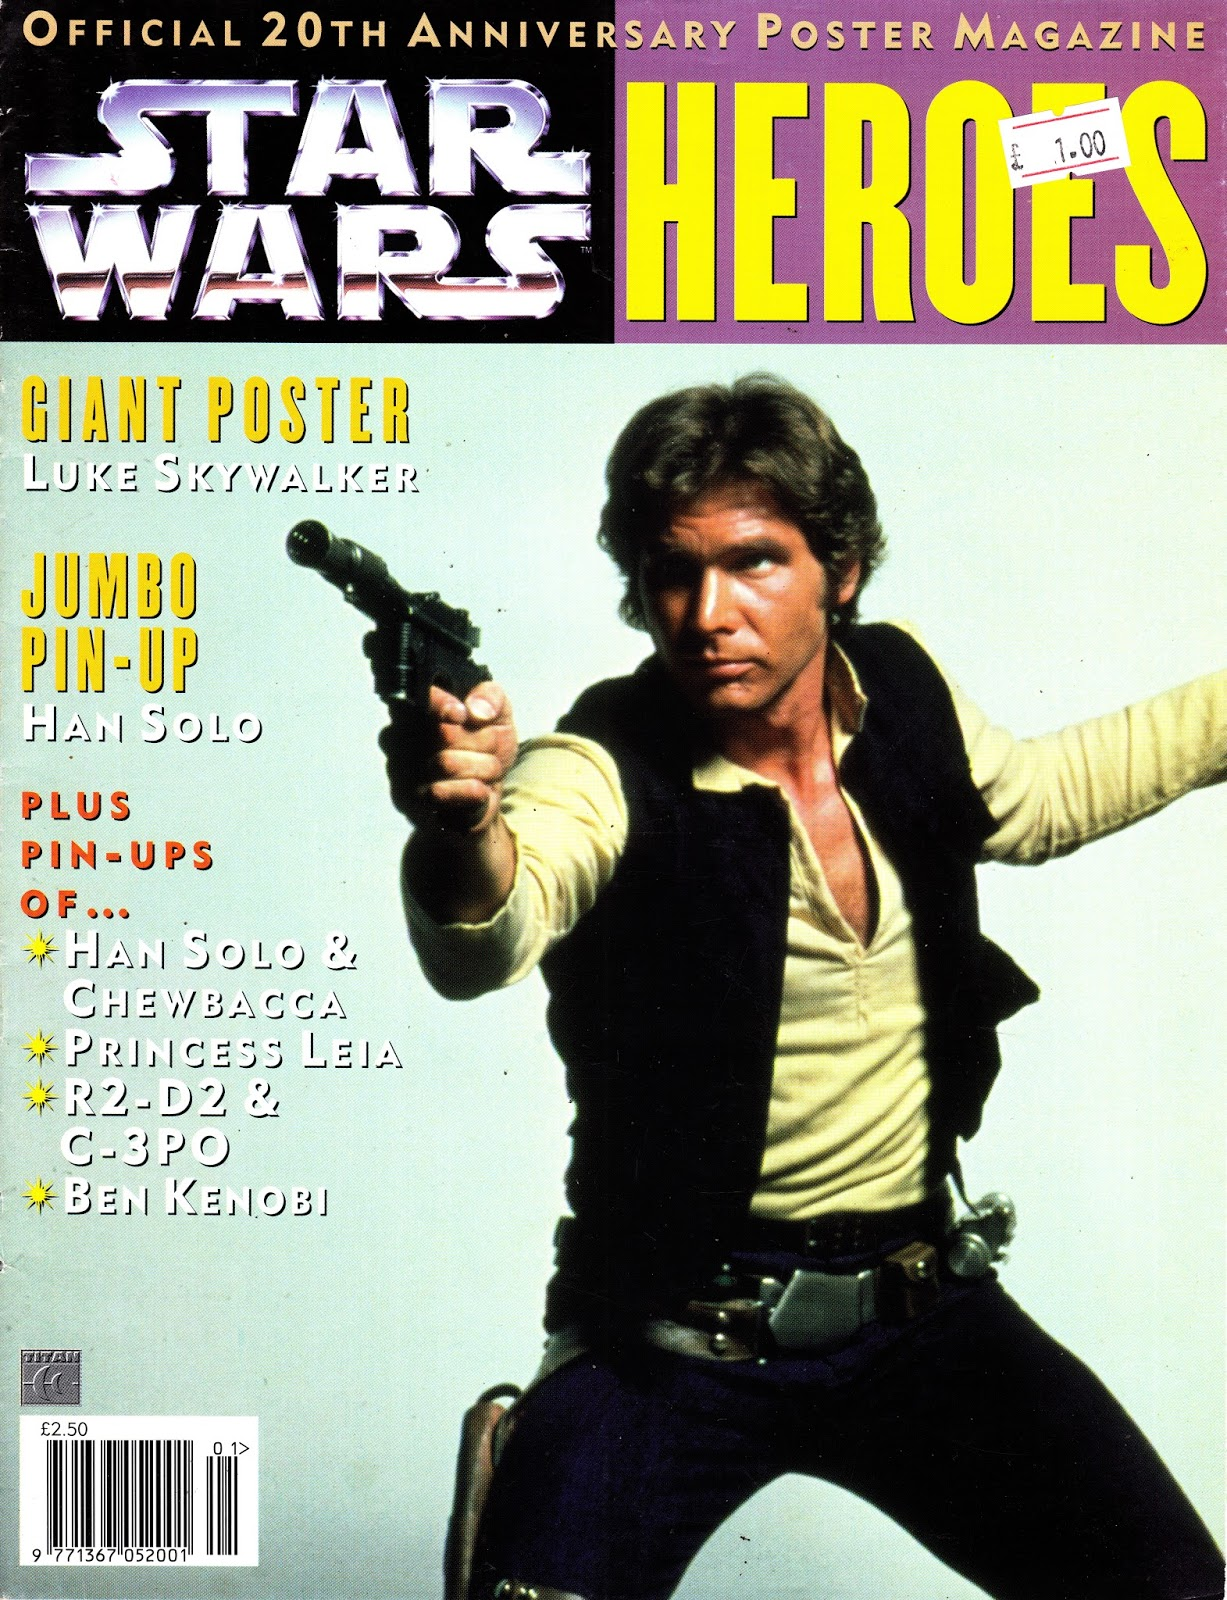 Star Wars Heroes (Official Poster Magazine 1997)